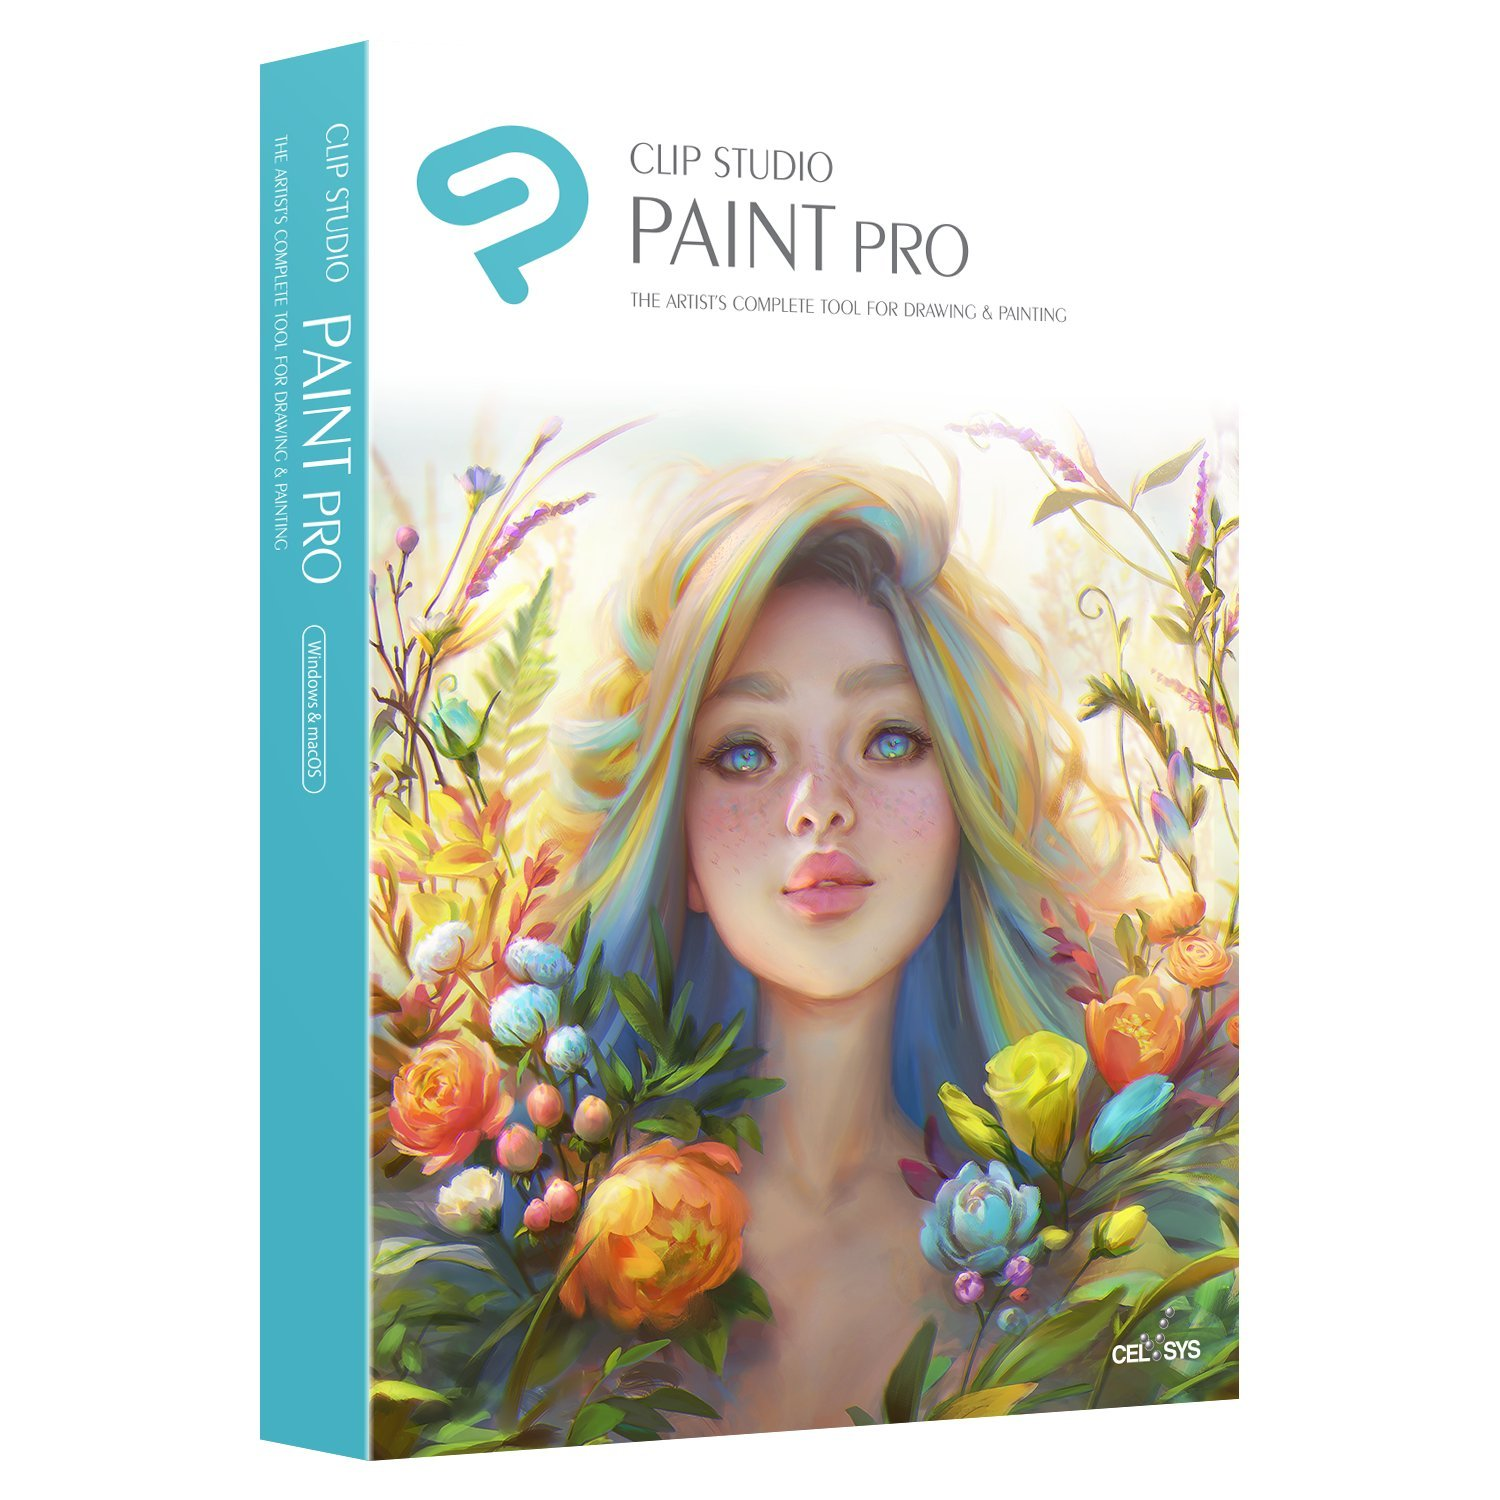 CLIP STUDIO PAINT PRO - NEW Branding - for Microsoft Windows and MacOS by Graphixly